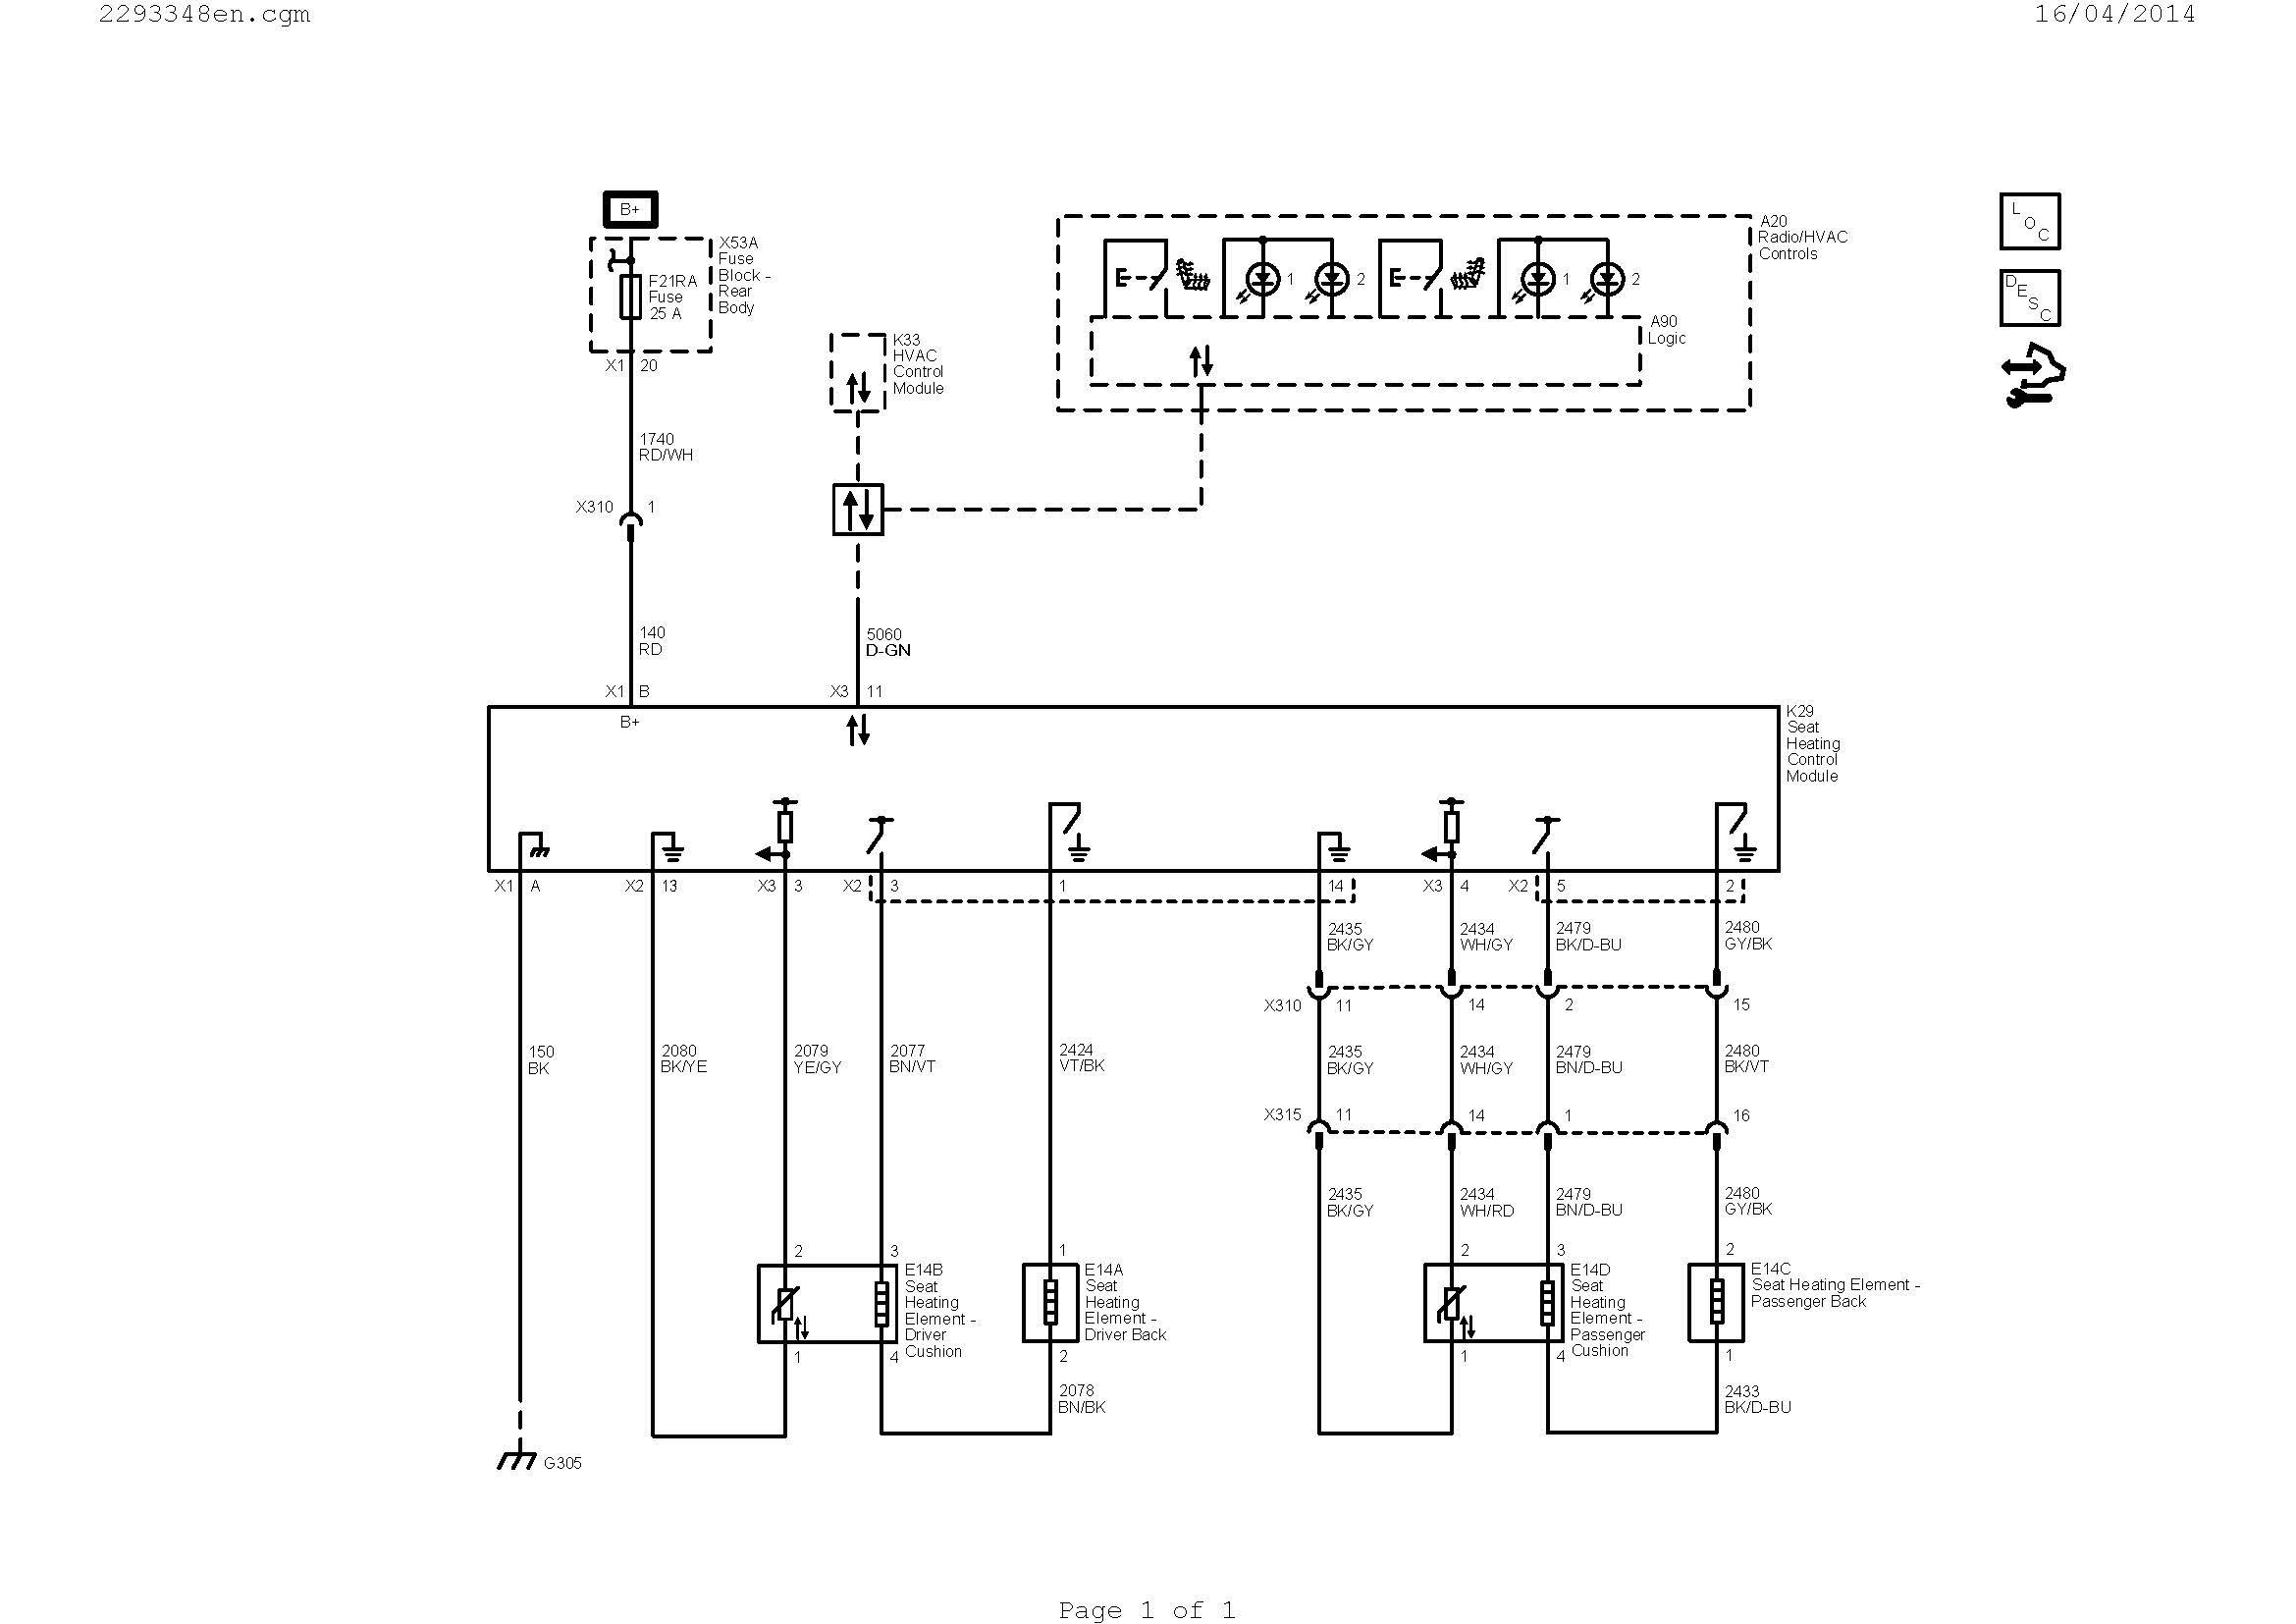 wiring diagram program Download-Hvac Wiring Diagram software Wiring Diagrams for Electrical New Wiring Diagram Guitar Fresh Hvac Diagram 14-q